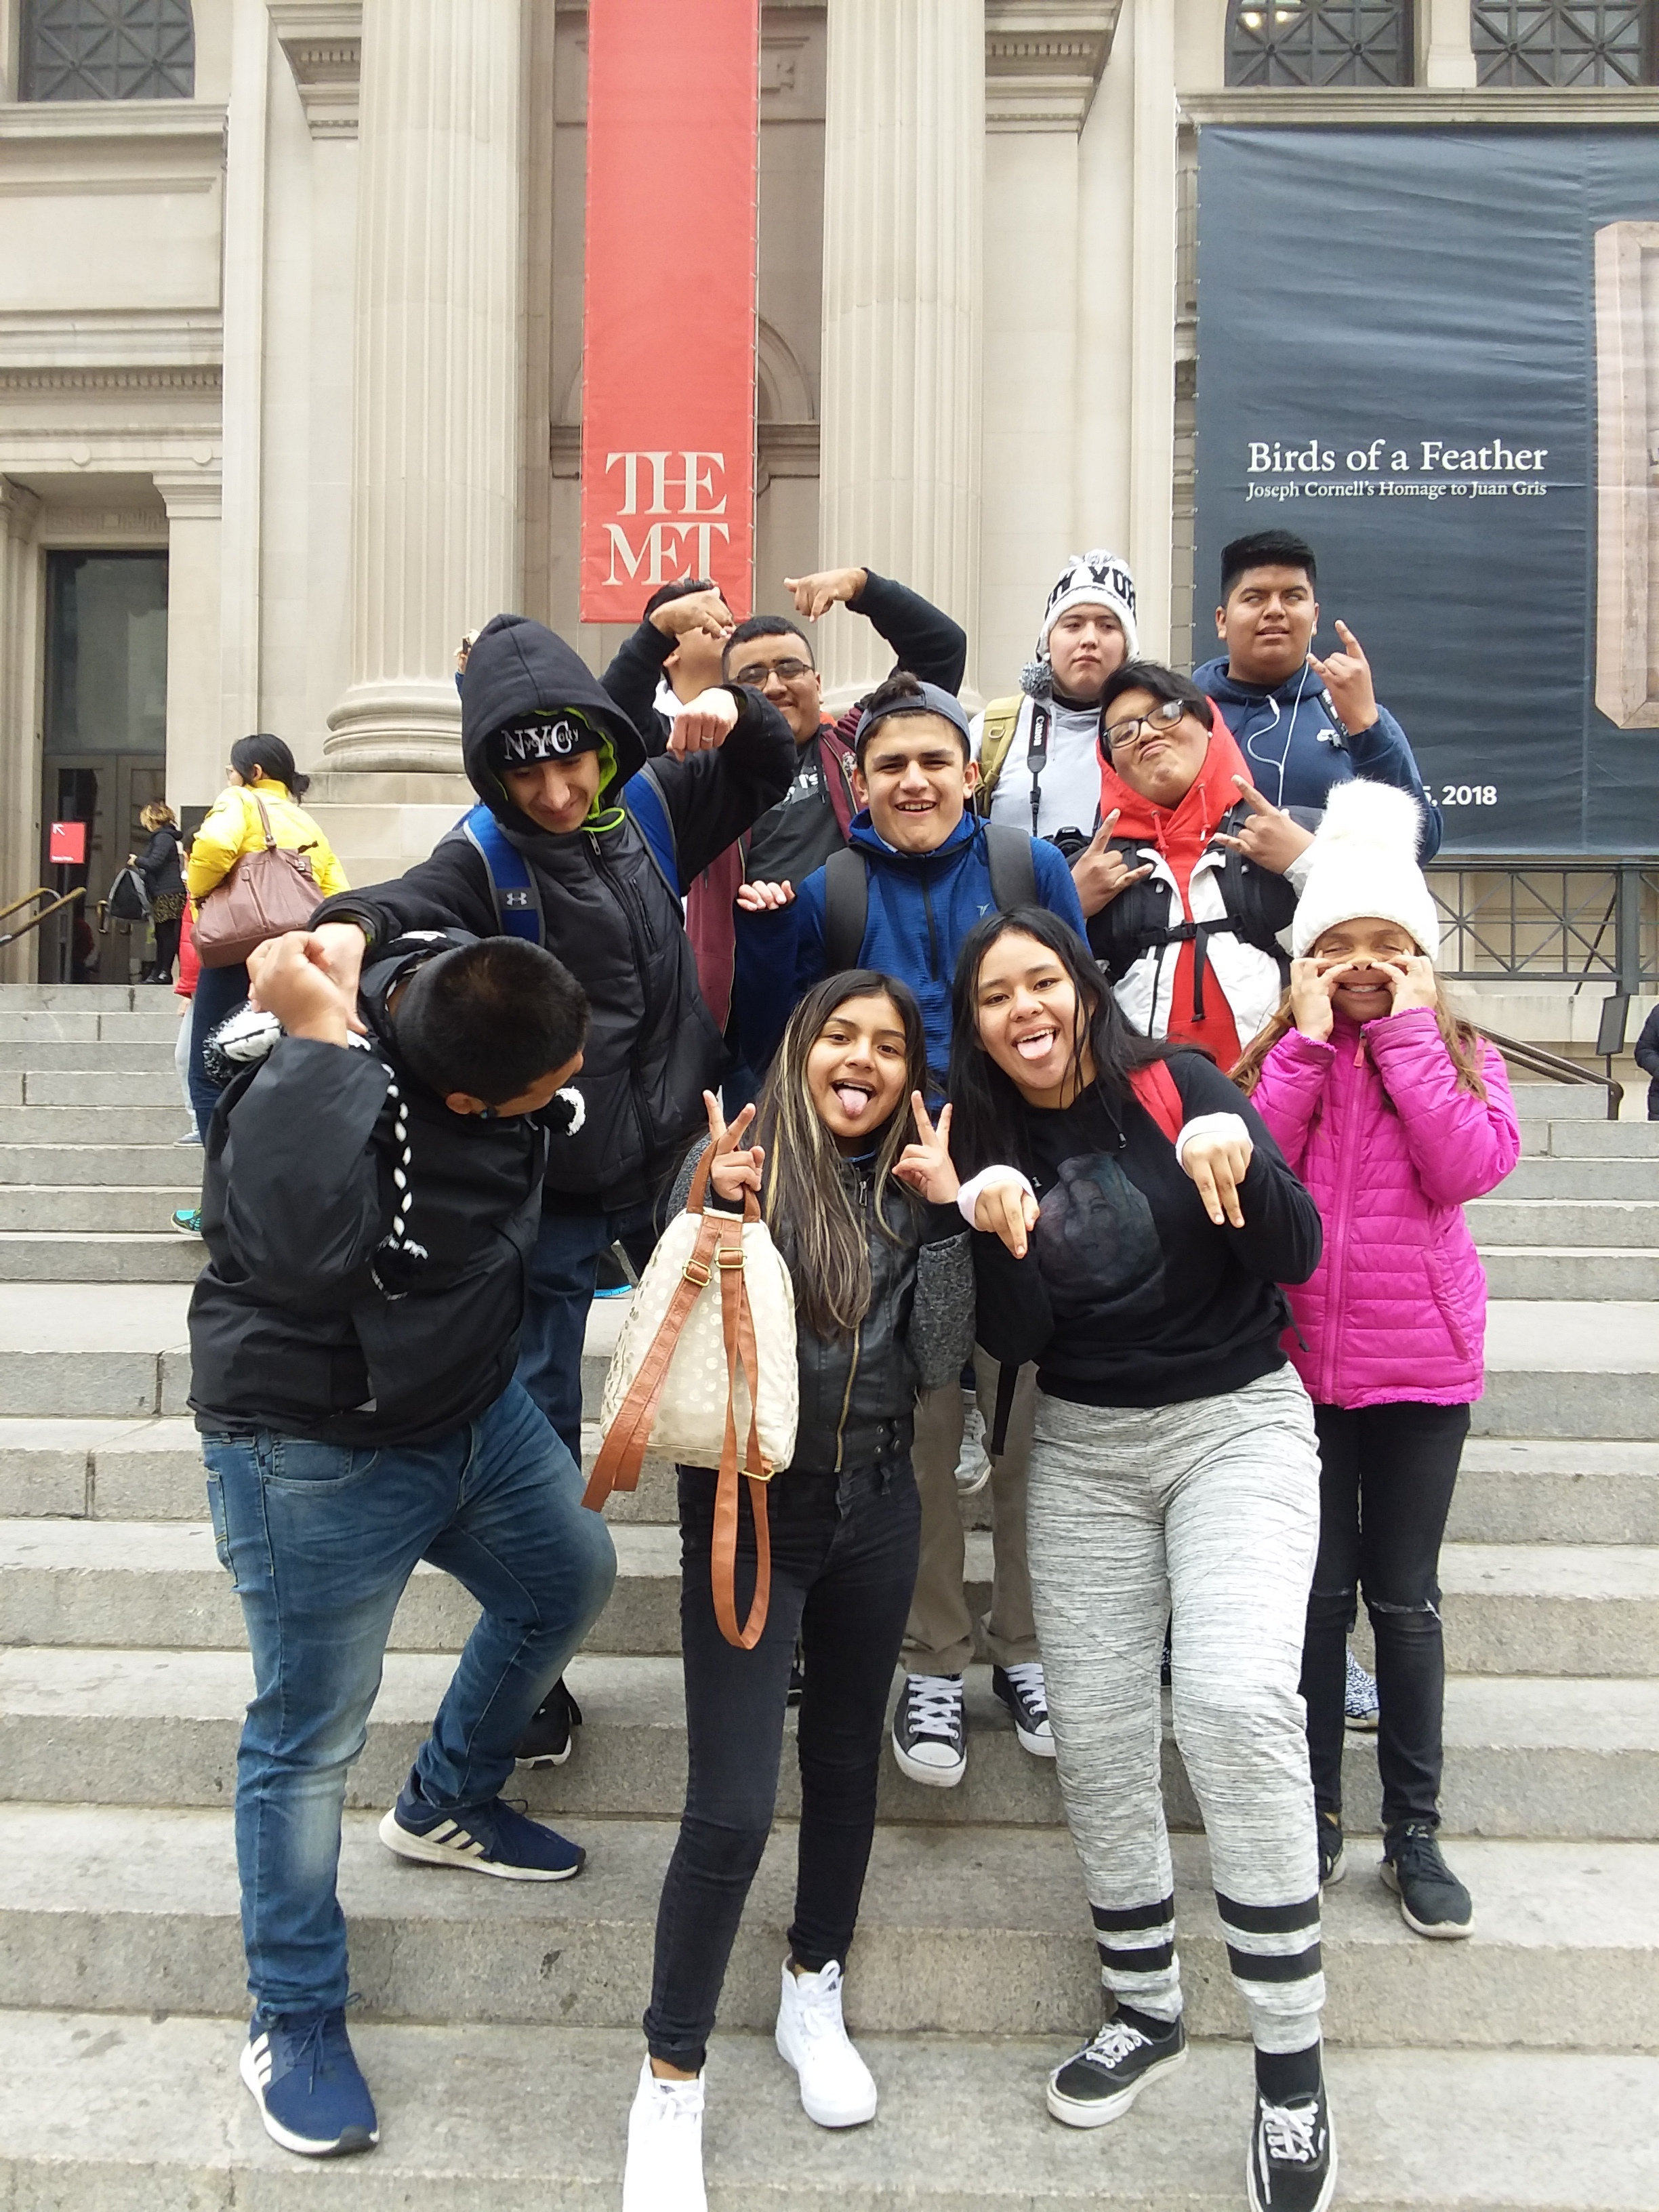 Students (half group) - at the The Met - CRAZY version